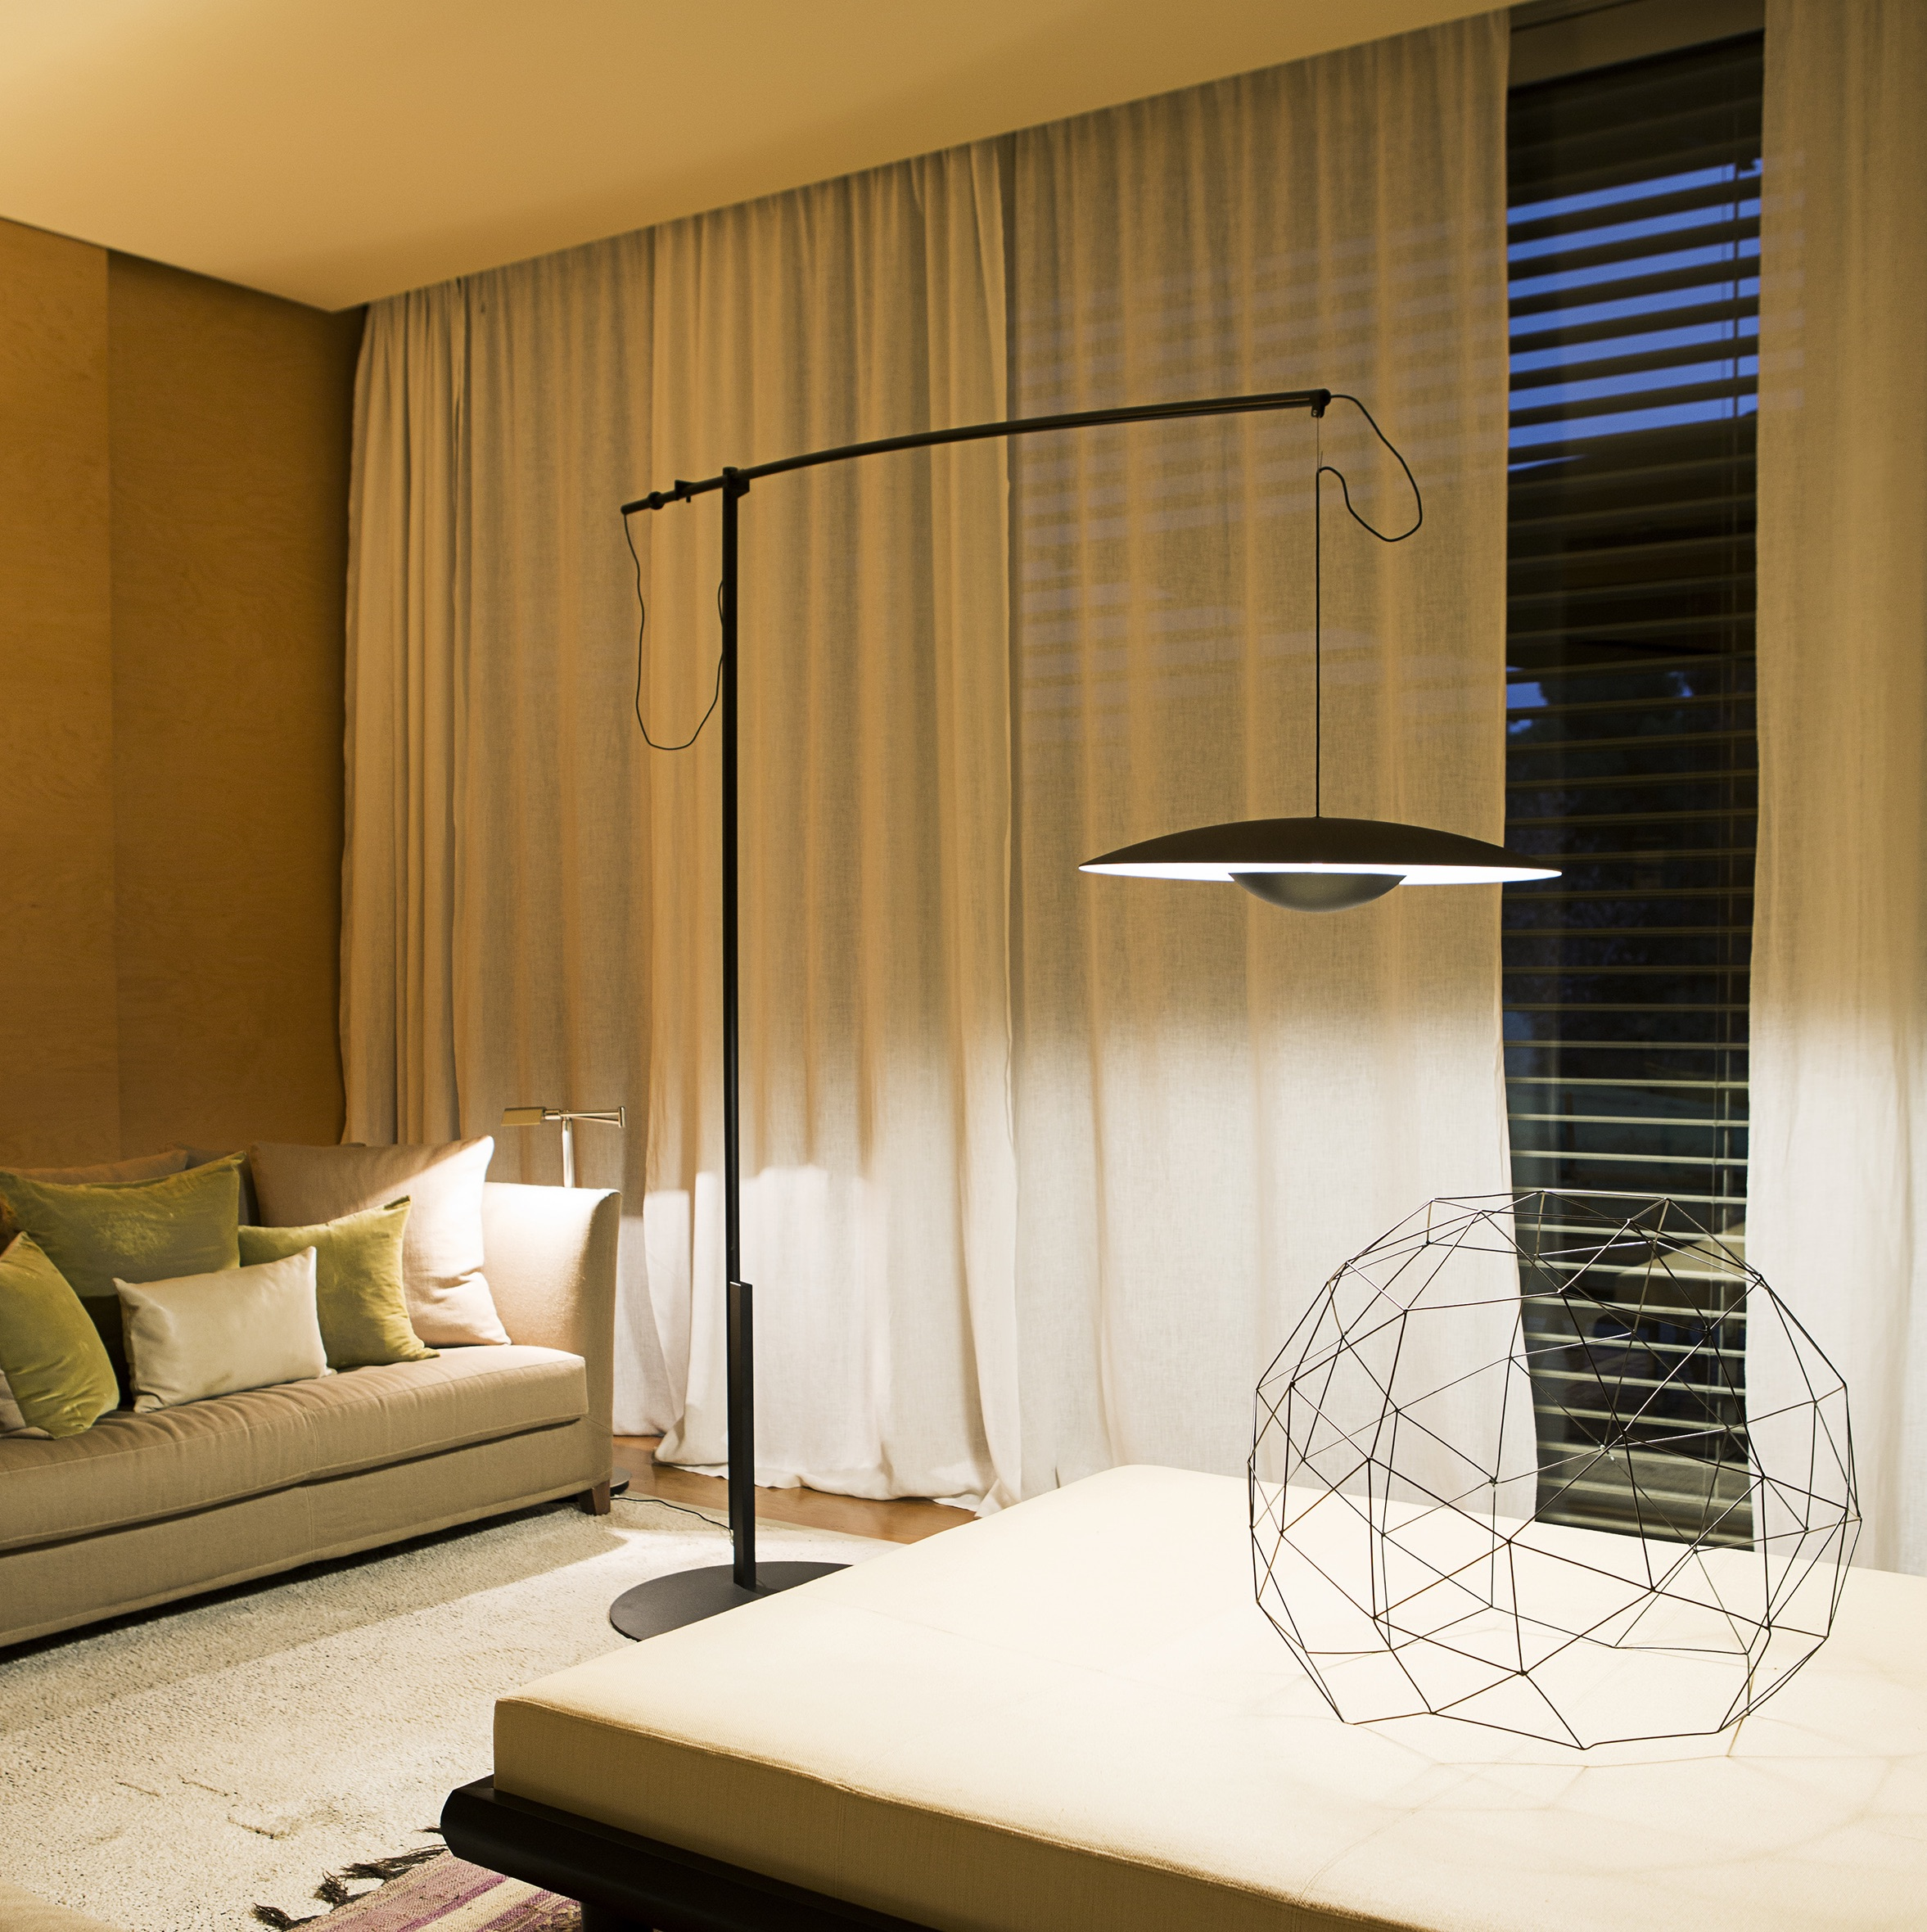 lampadaire led ginger xxl 60 weng h202cm marset luminaires nedgis. Black Bedroom Furniture Sets. Home Design Ideas